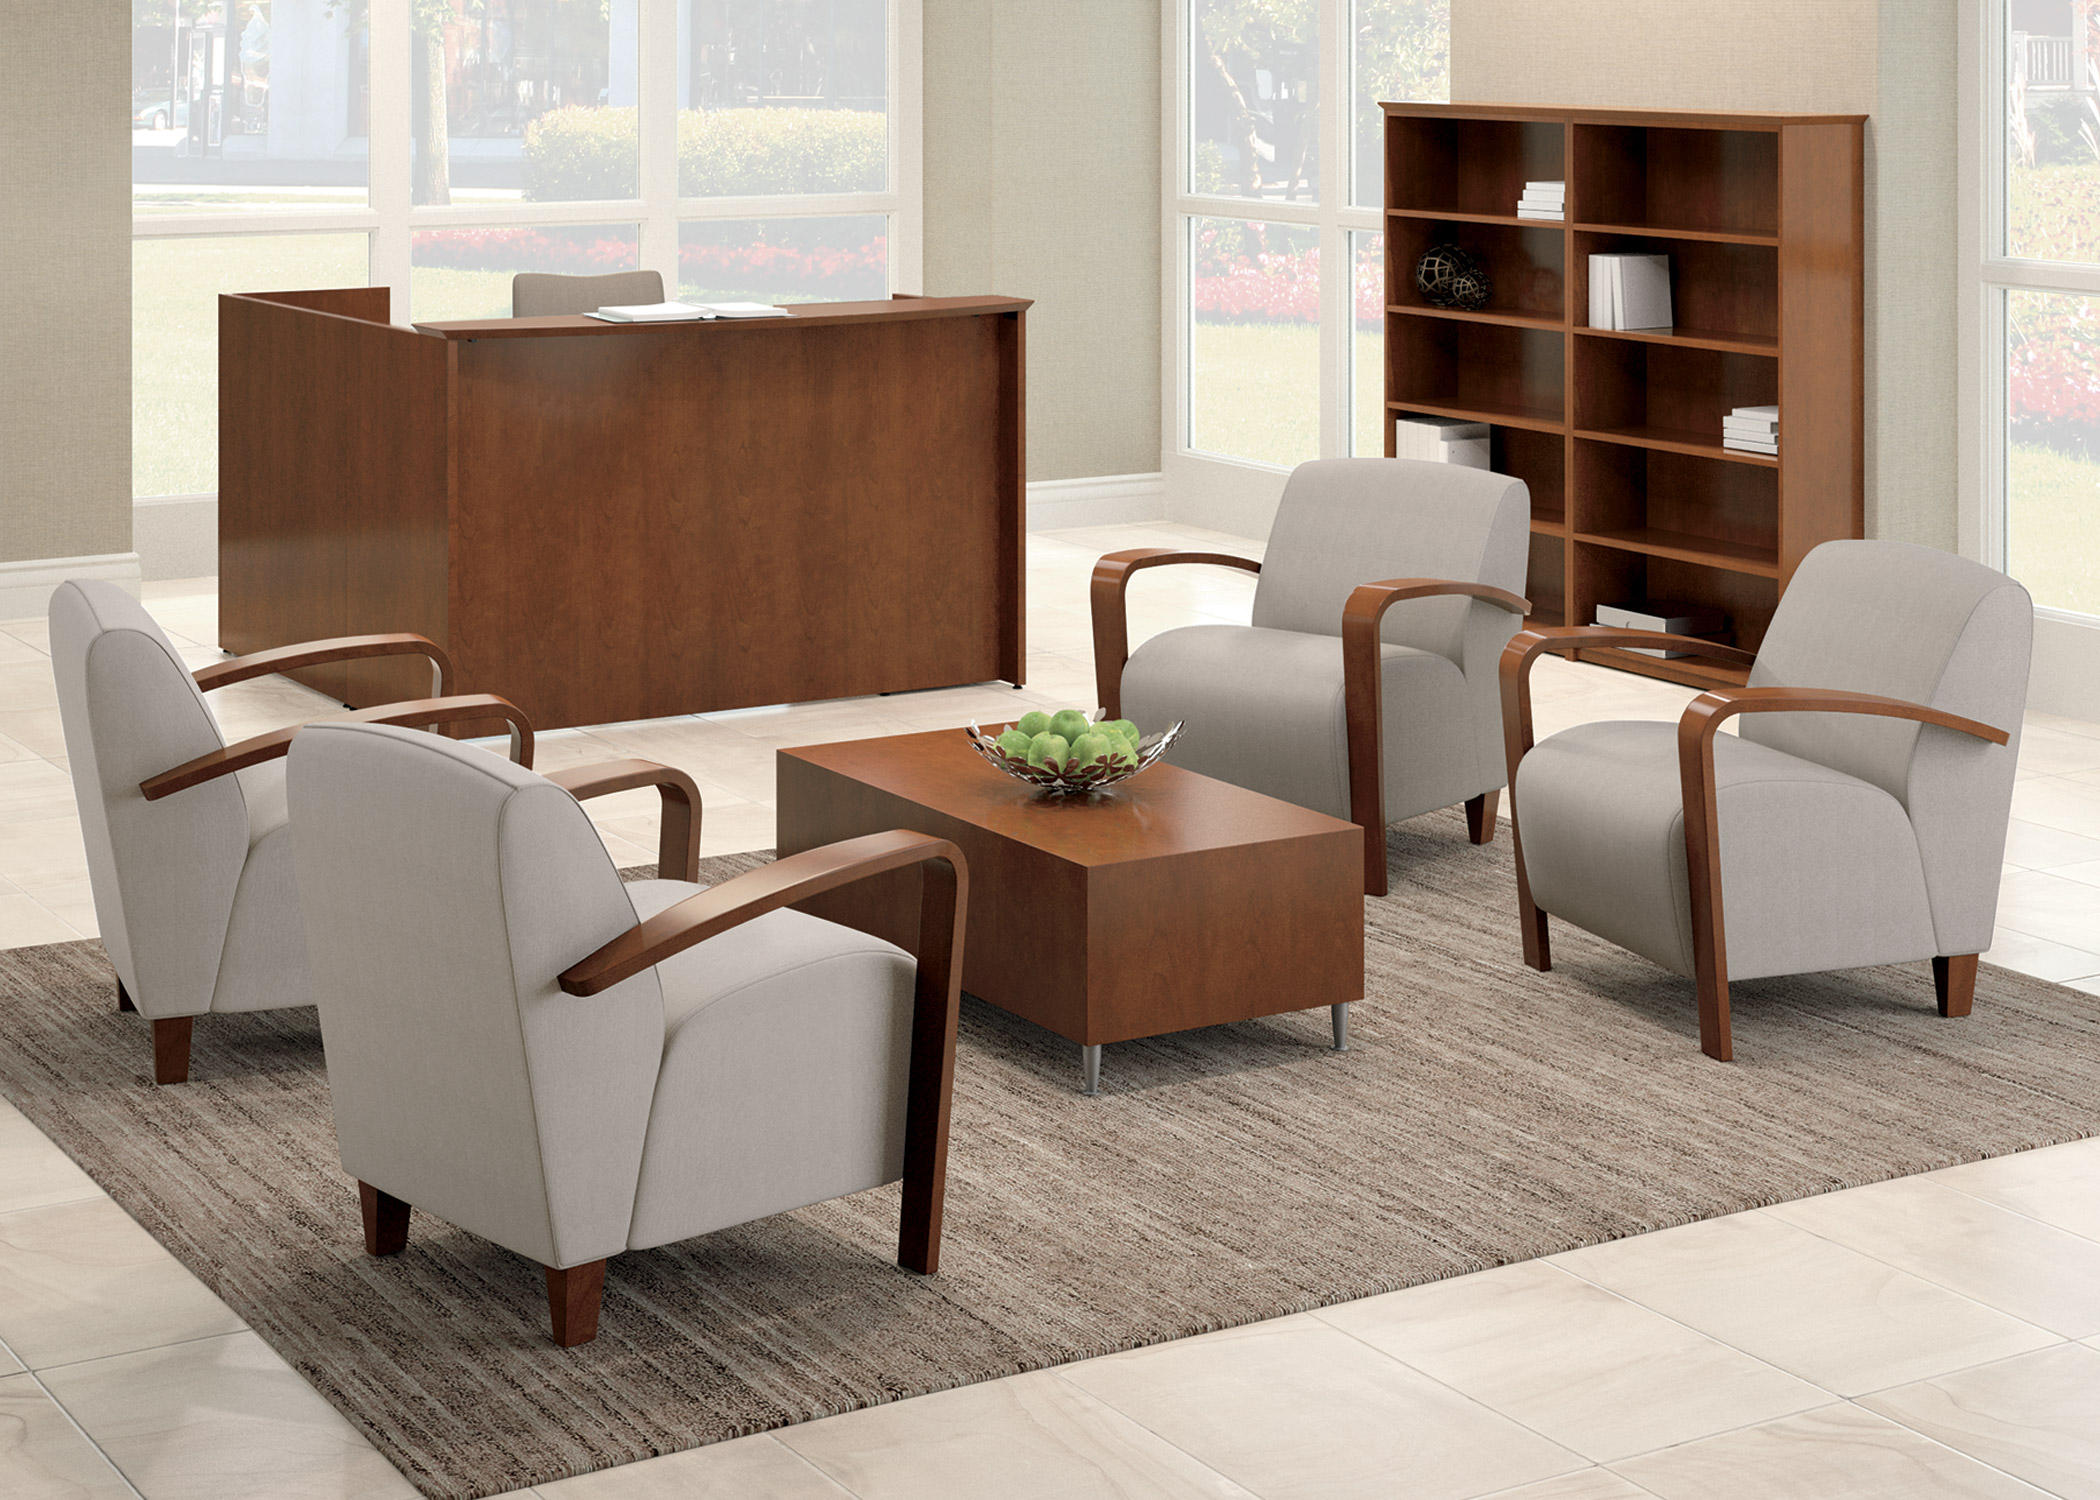 Reno 2 seat bench waiting area benches from national for Furniture nation